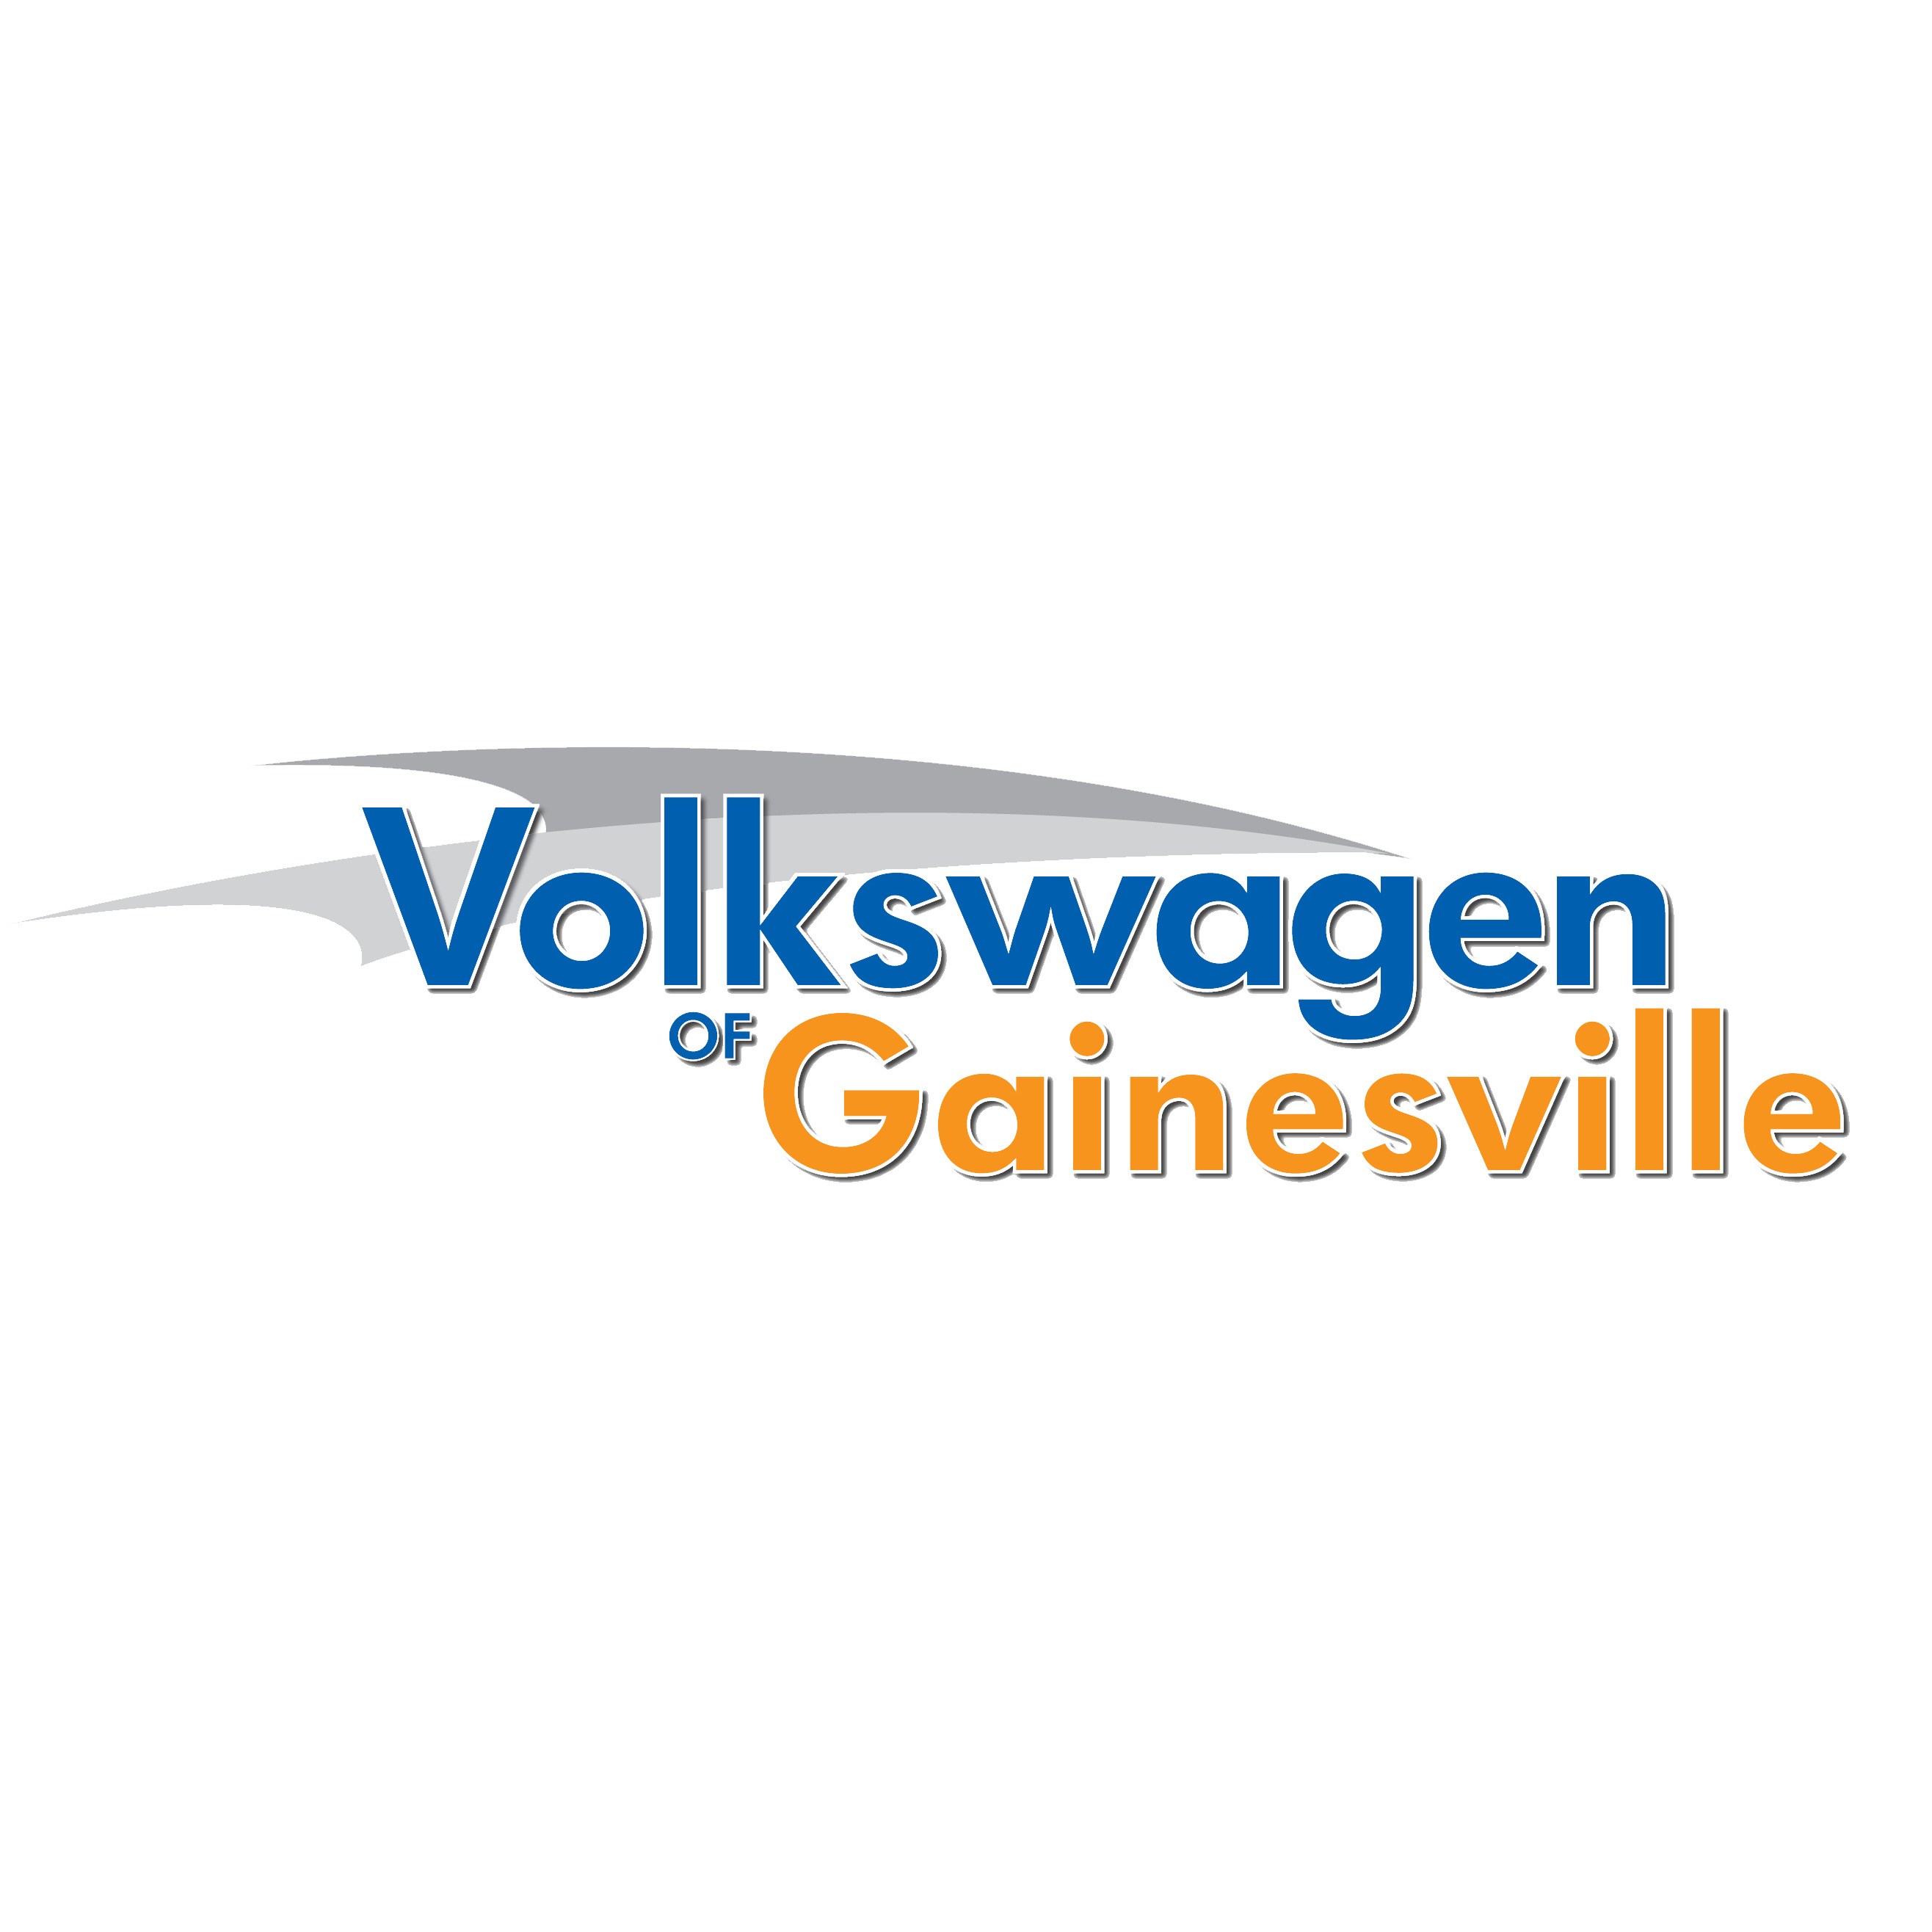 Volkswagen Florida Dealerships: Volkswagen Of Gainesville In Gainesville, FL